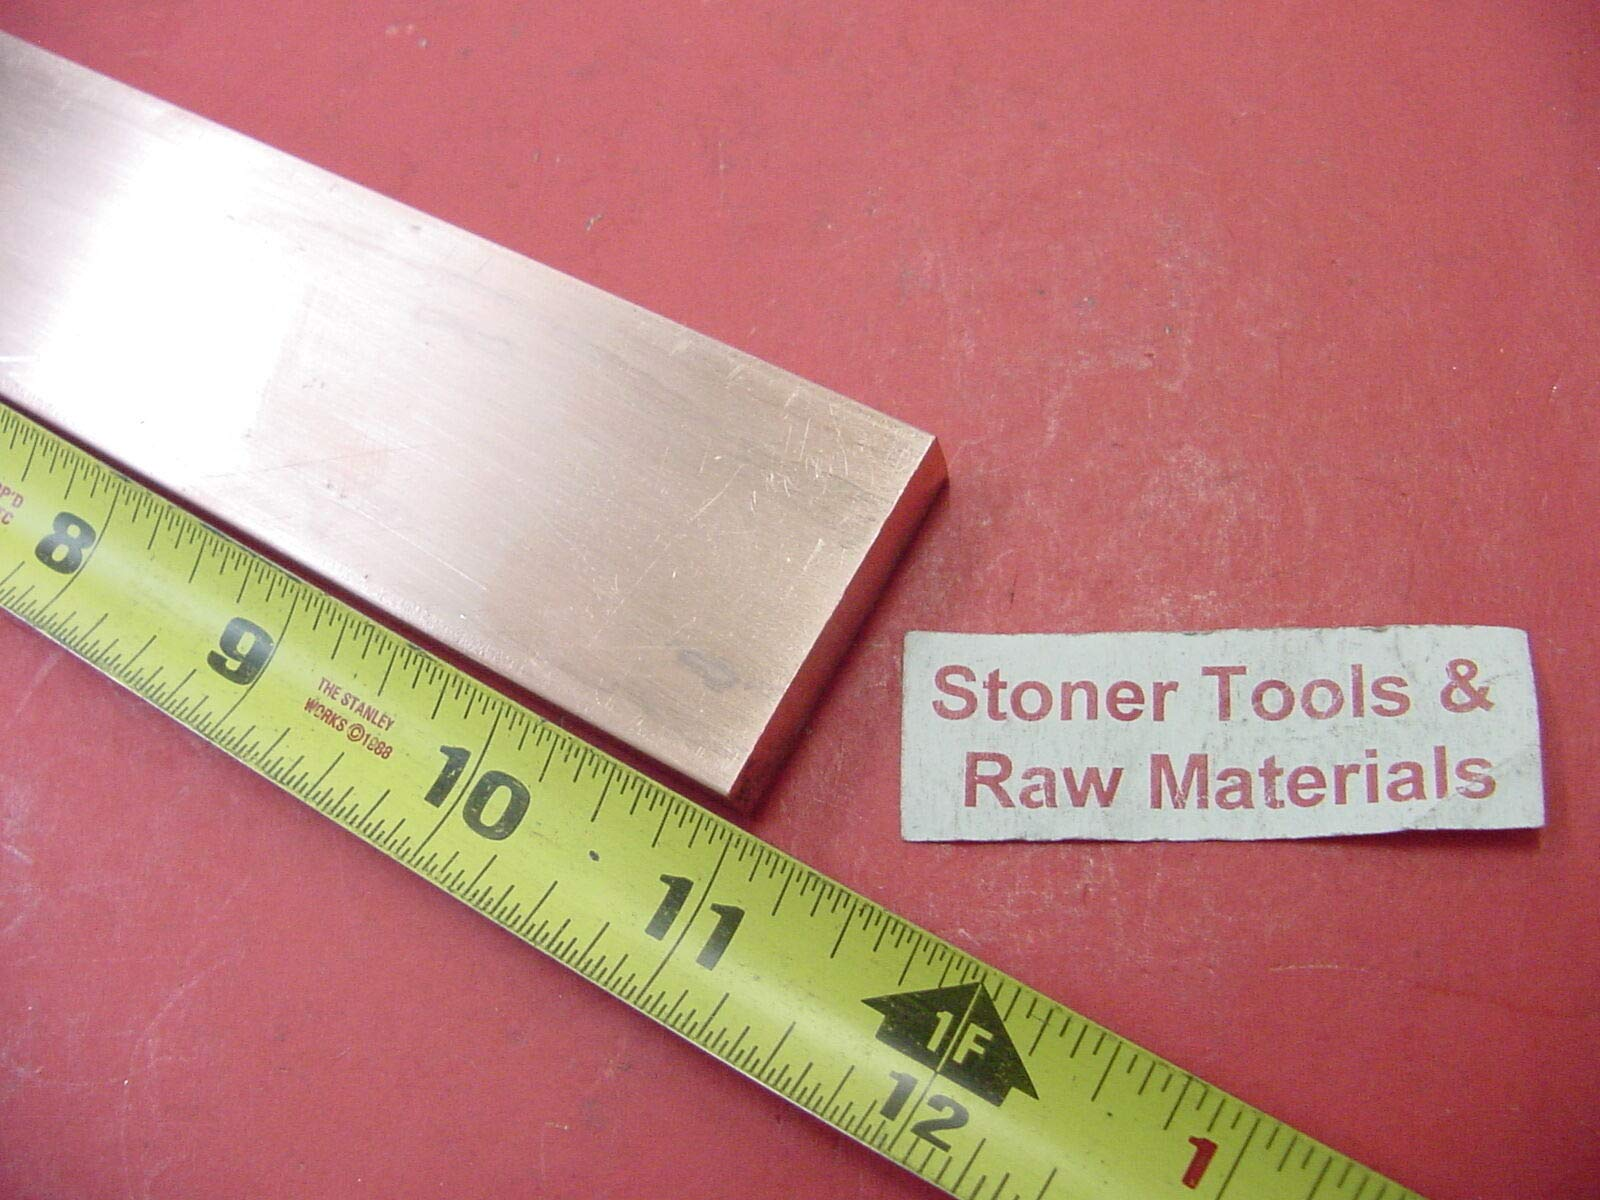 3/8''x 1-1/2'' C110 COPPER BAR 11'' long Solid Flat Bar .375'' Bus Bar Stock H02 by Okumahome